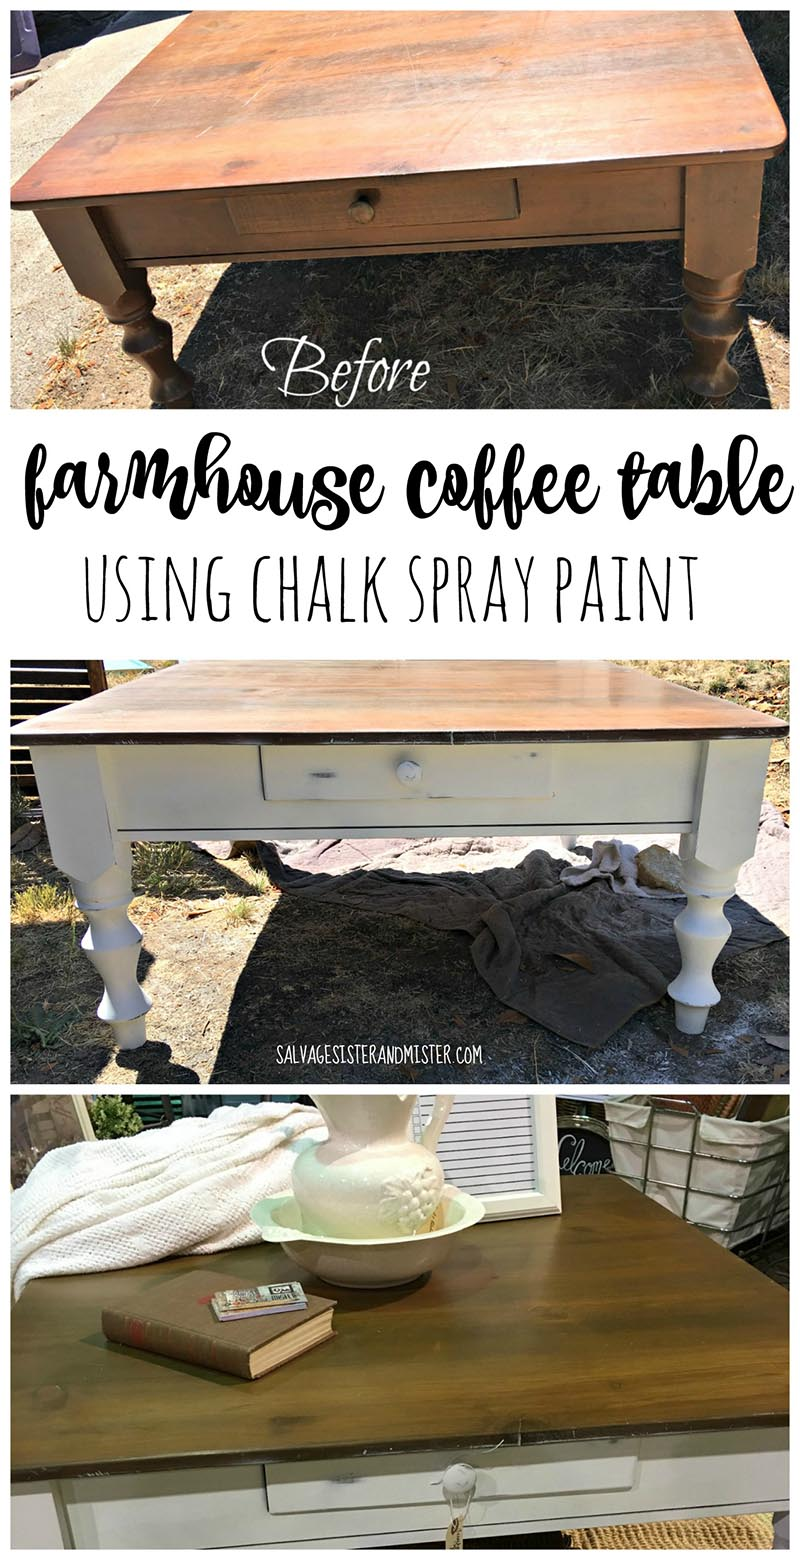 The Best Budget Friendly Farmhouse Spray Paint DIYS will totally inspire to conjure up some Magical Home Decor Creations! The possibilities are endless.